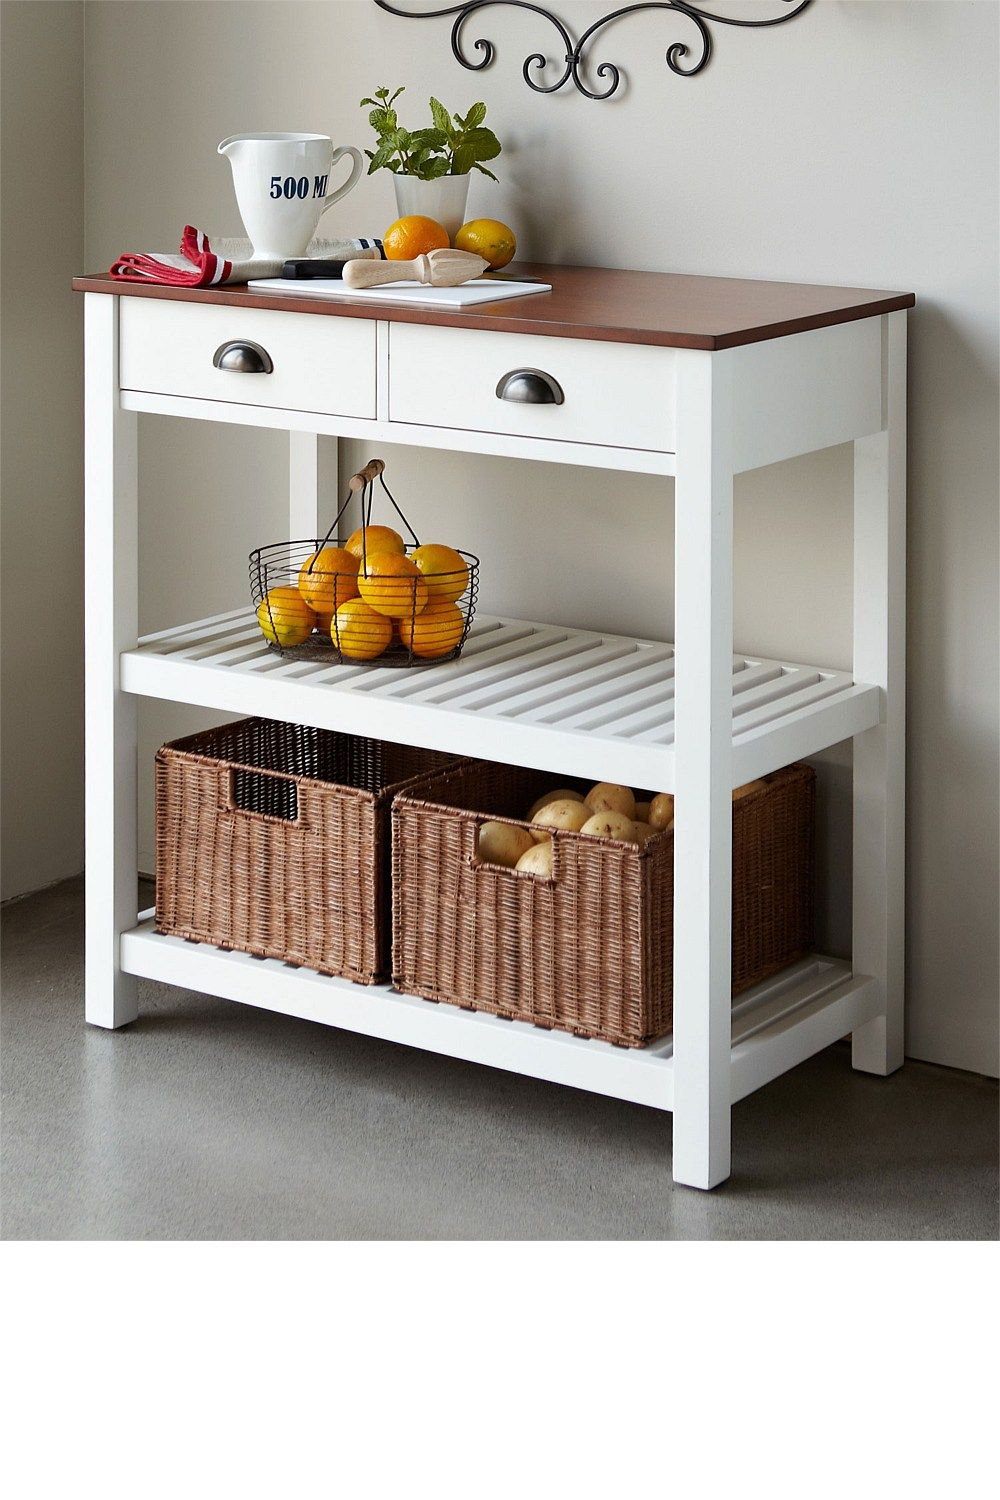 Wire Shelving Accessories To Make Life Easier   Shelving.com